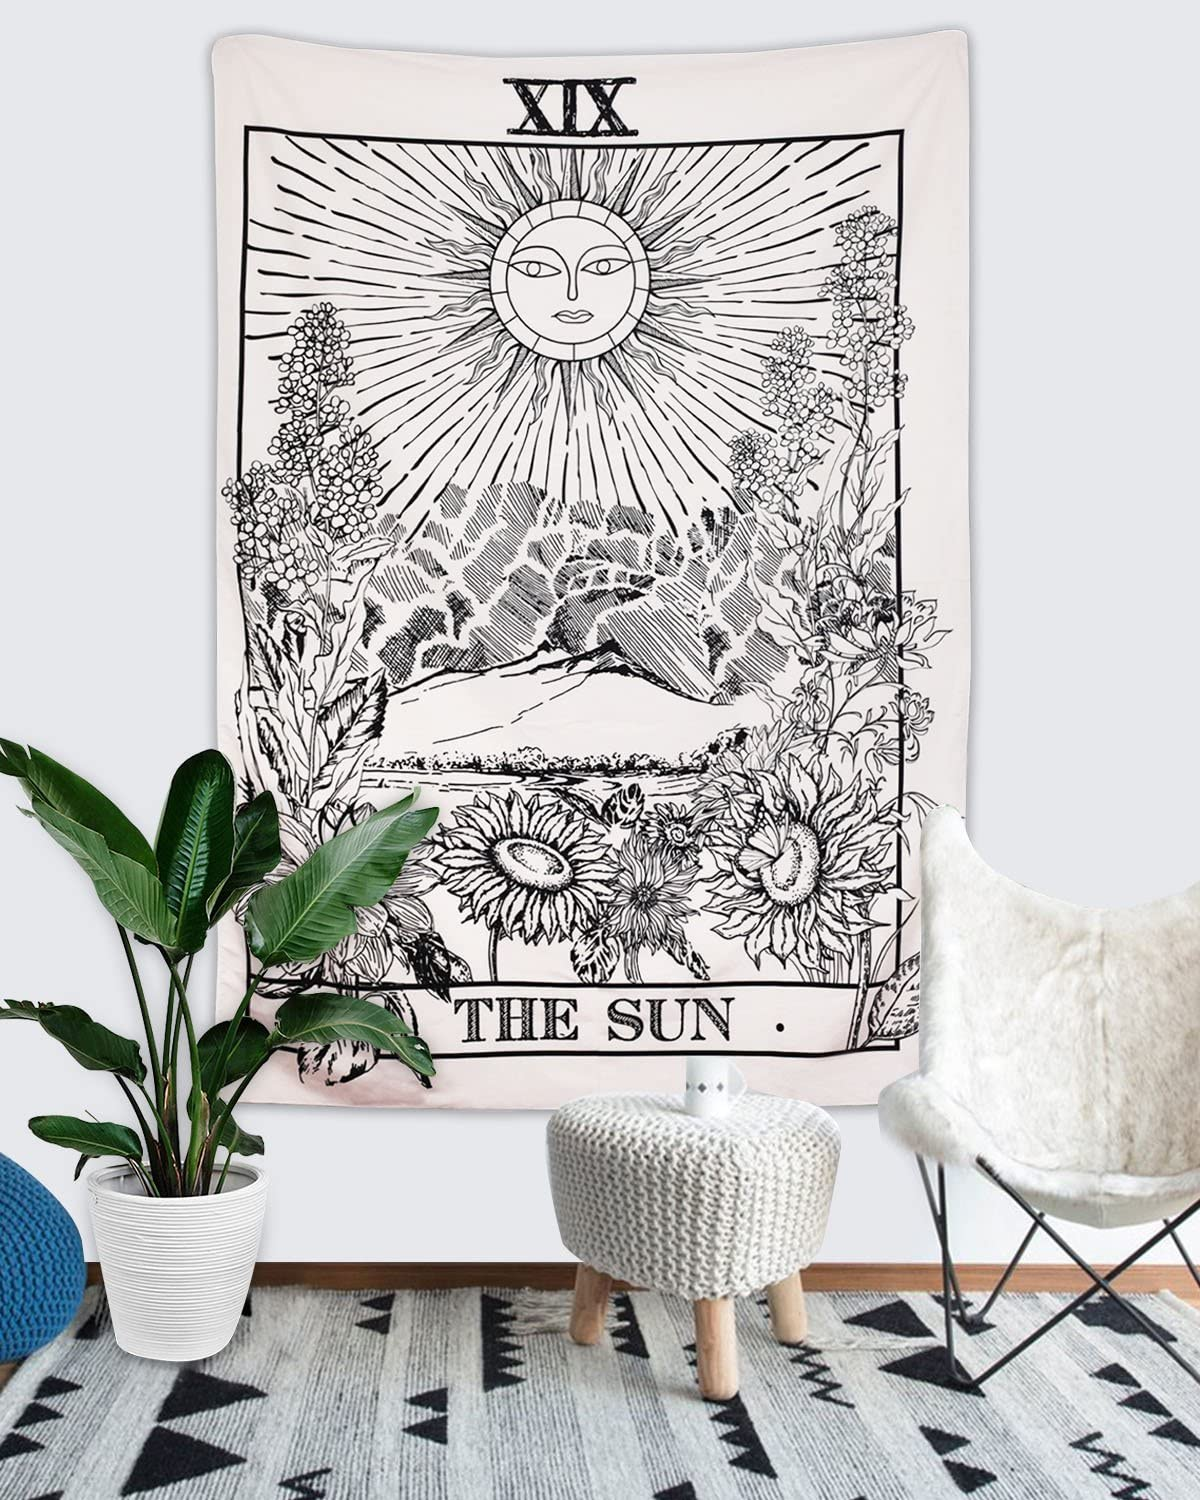 Romantic Tarot Tapestry The Moon The Star The Sun Tapestry Medieval Europe Divination Tapestry Wall Hanging Tapestries Mysterious Wall Tapestry for Home Decor 51/×59, The Sun